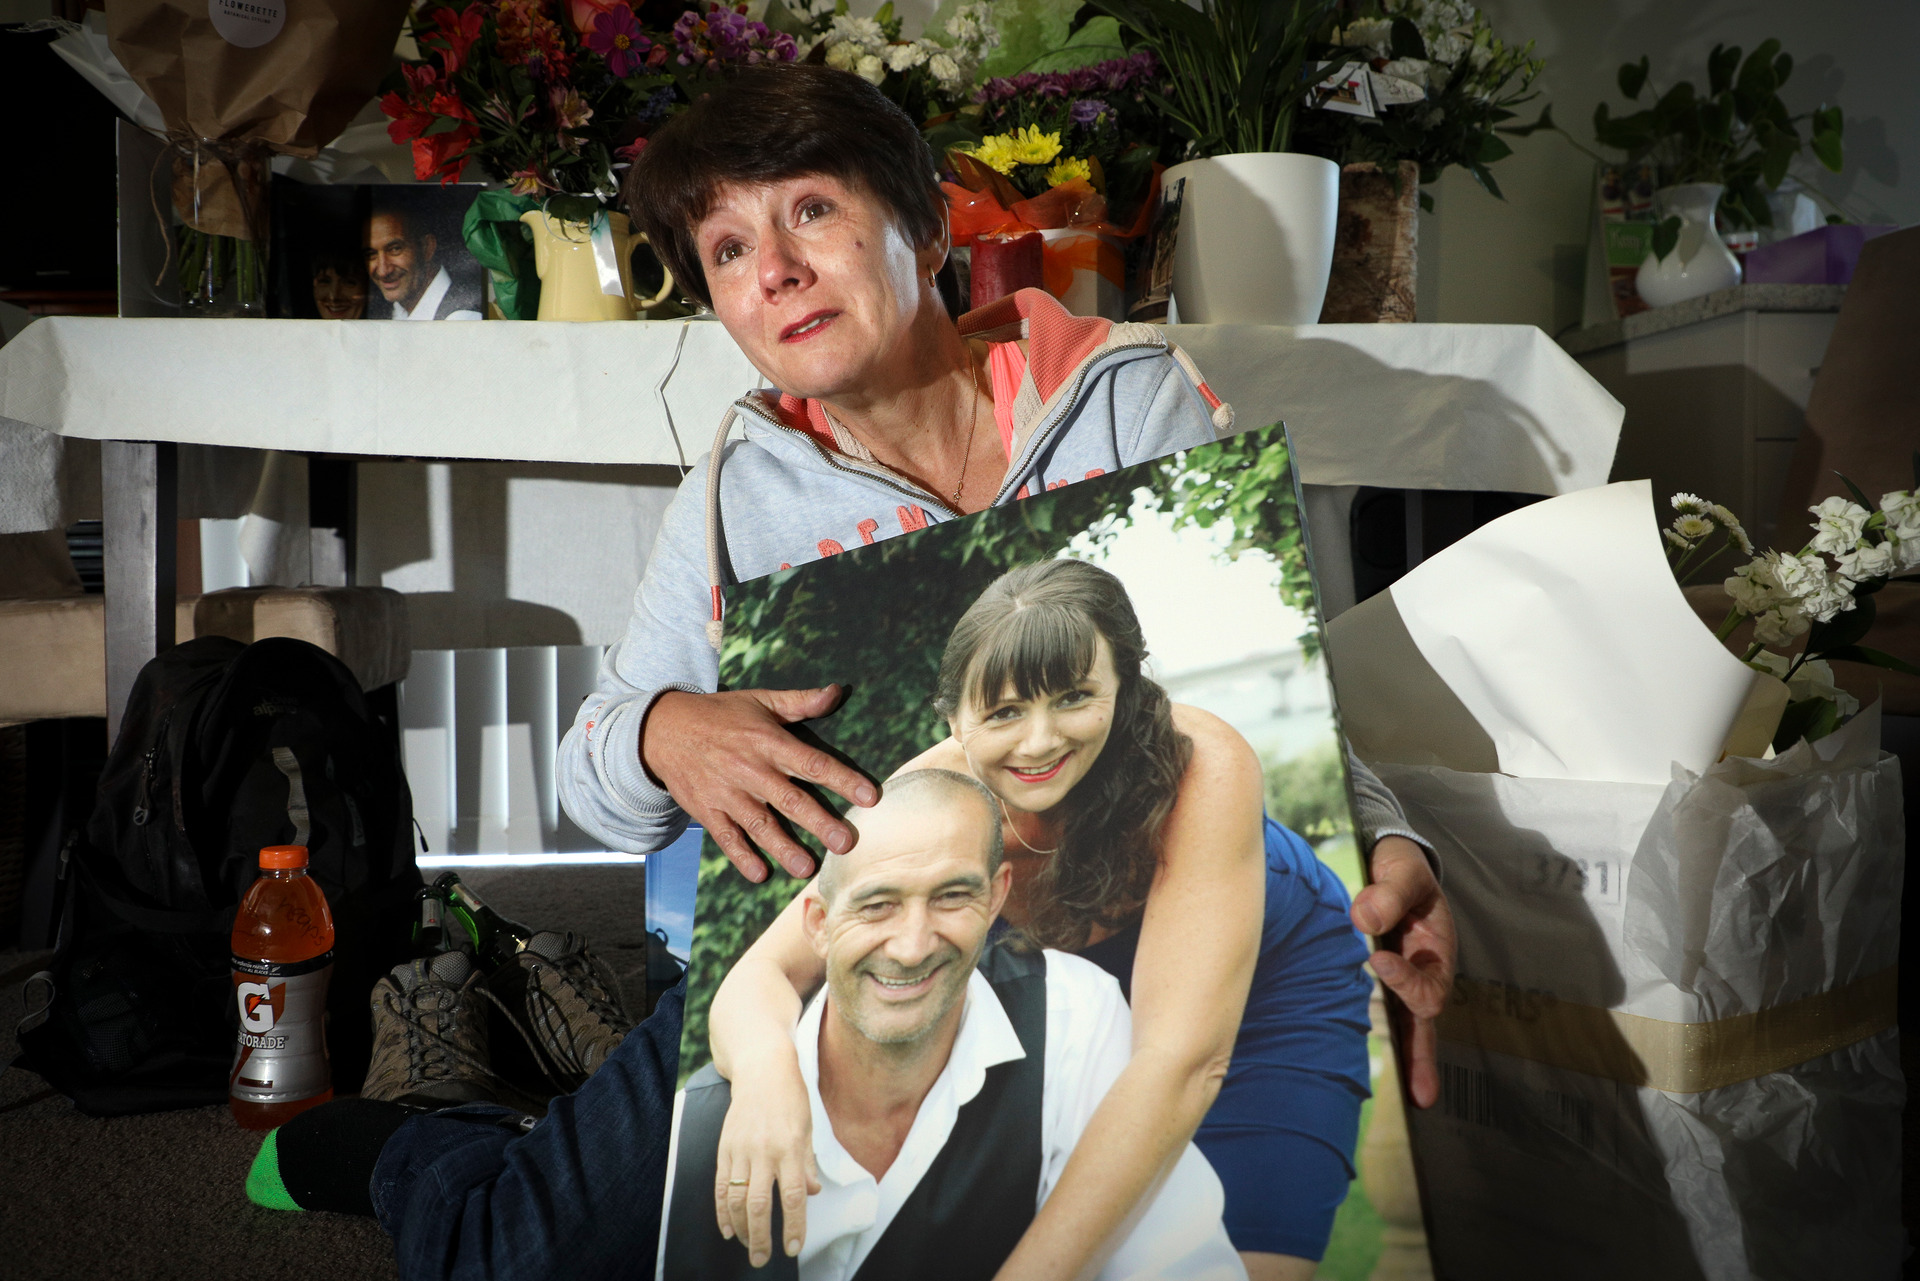 Tauranga man Fred August lost in truck crash had a 'smile that could light a room'